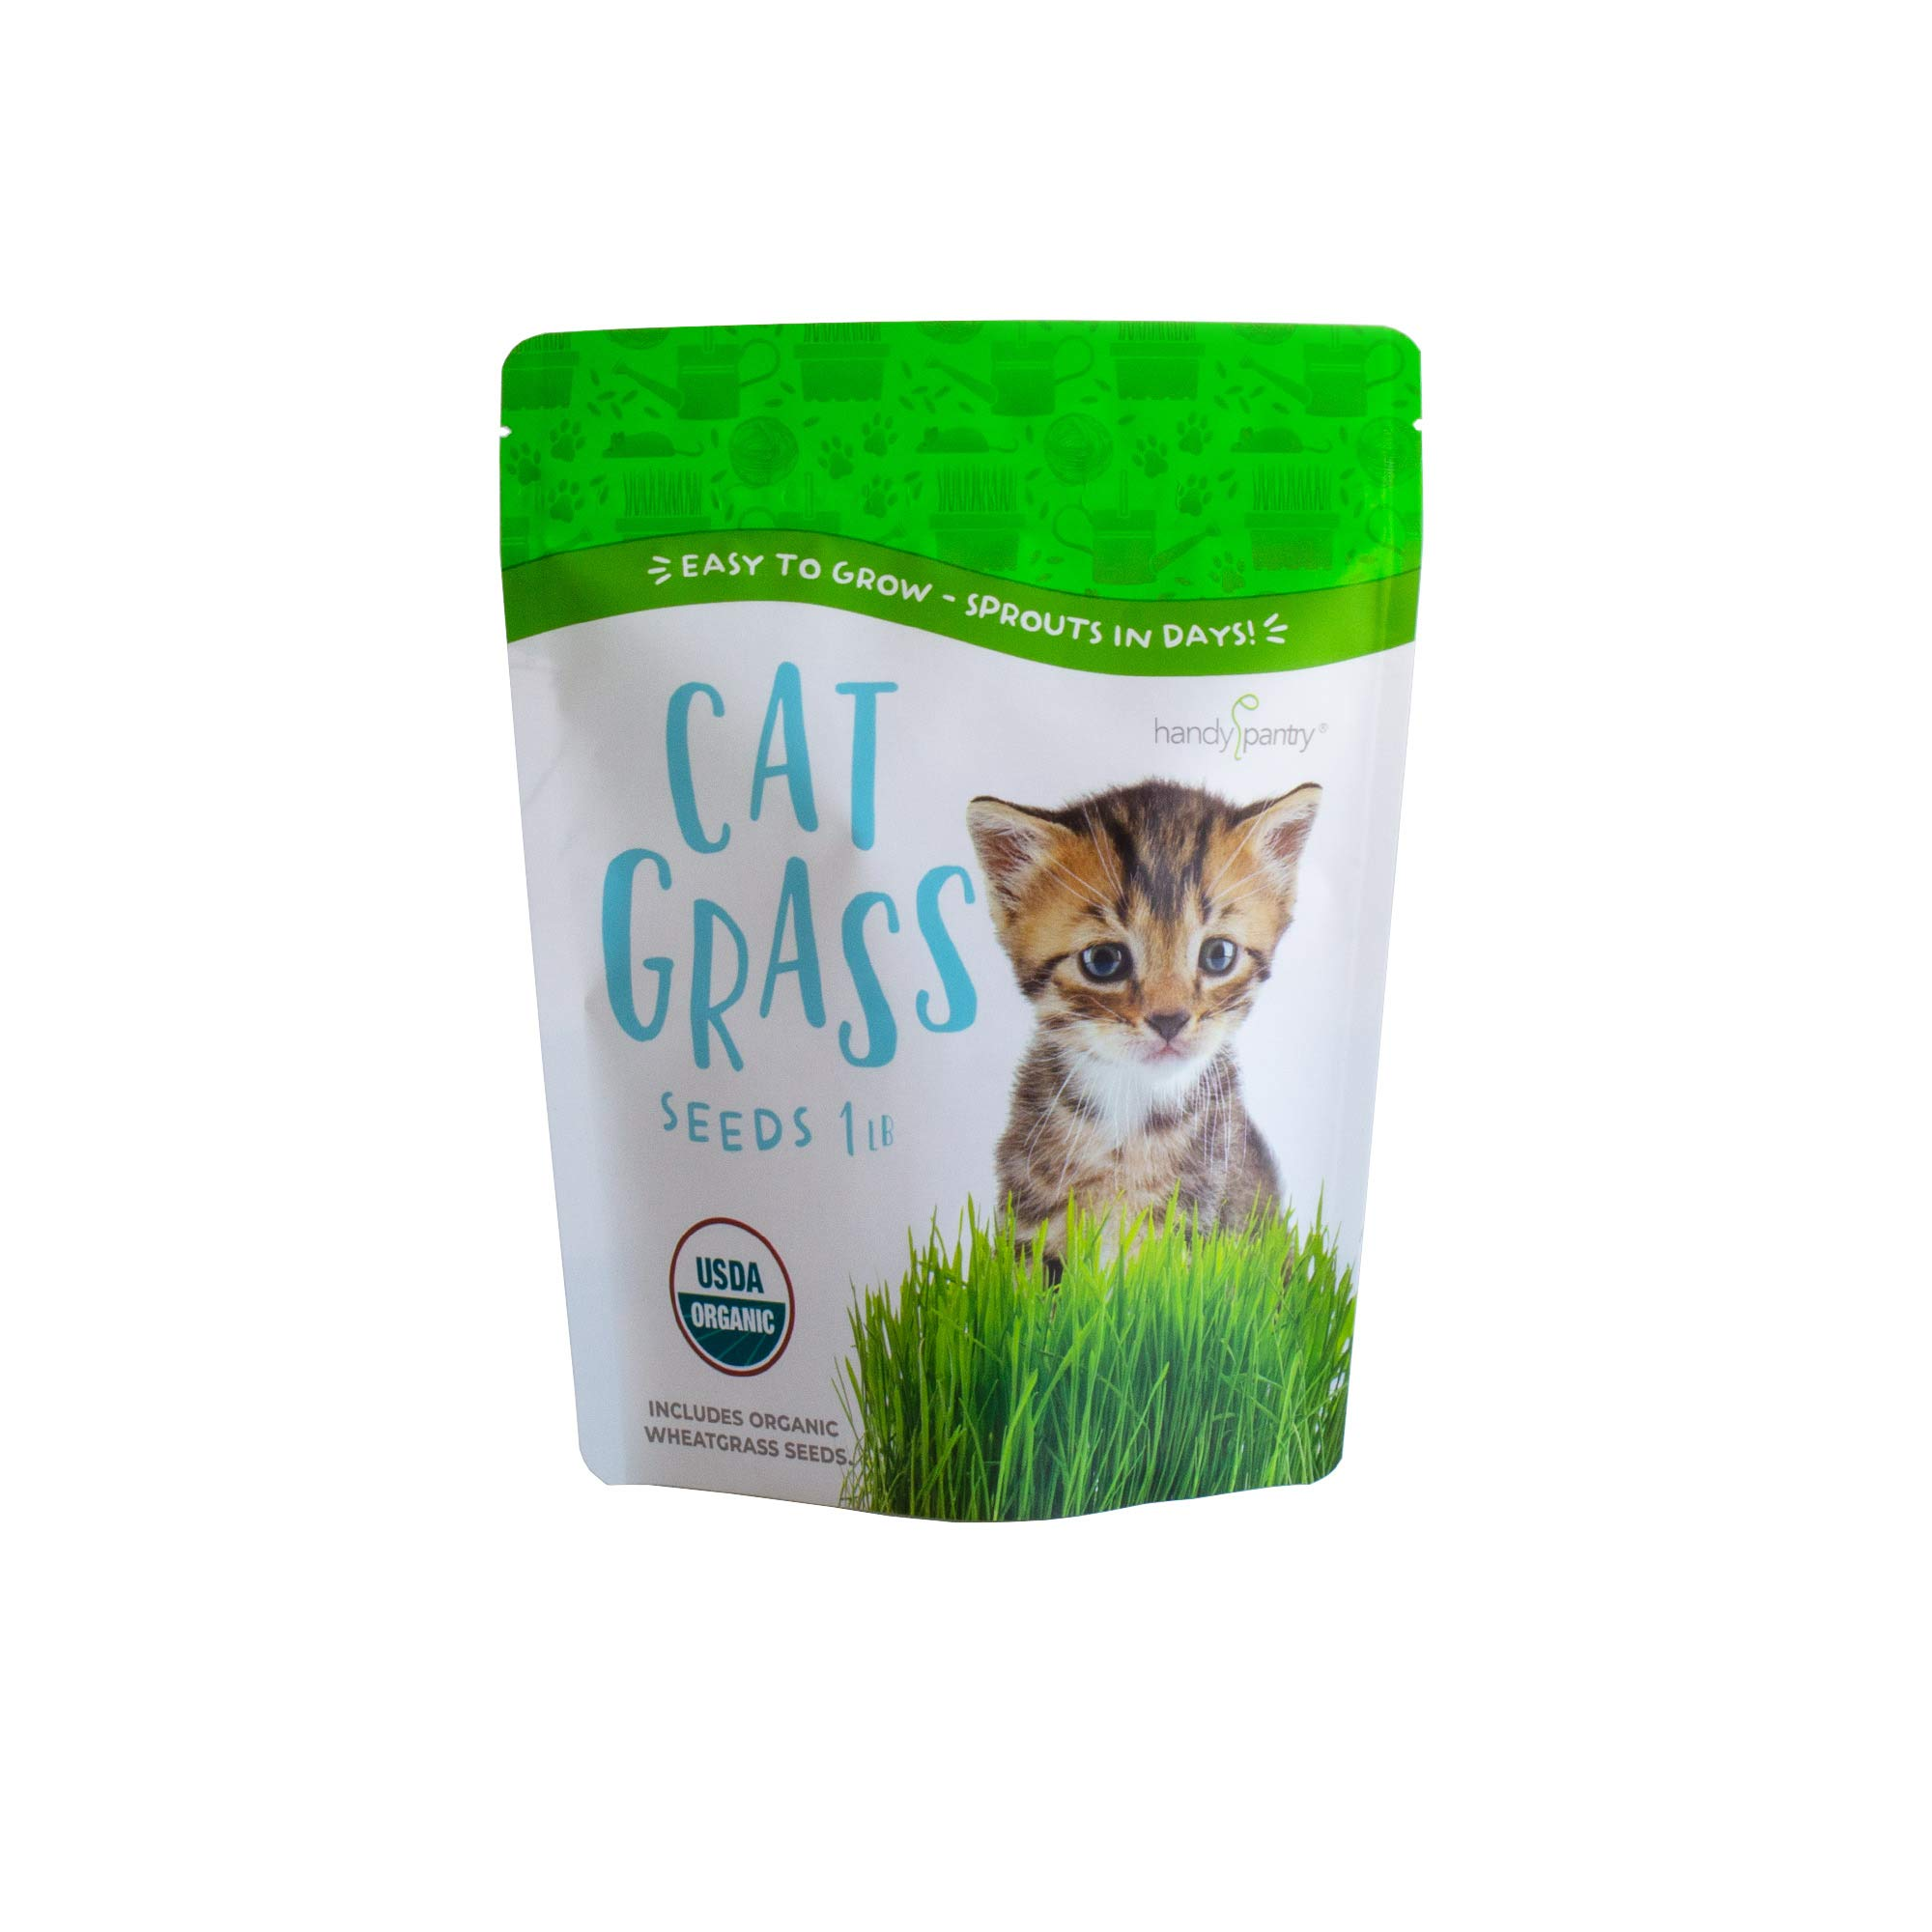 Handy Pantry Organic Cat Grass Seeds for Planting Grow Healthy Non-GMO Wheatgrass Snacks for Your Cat